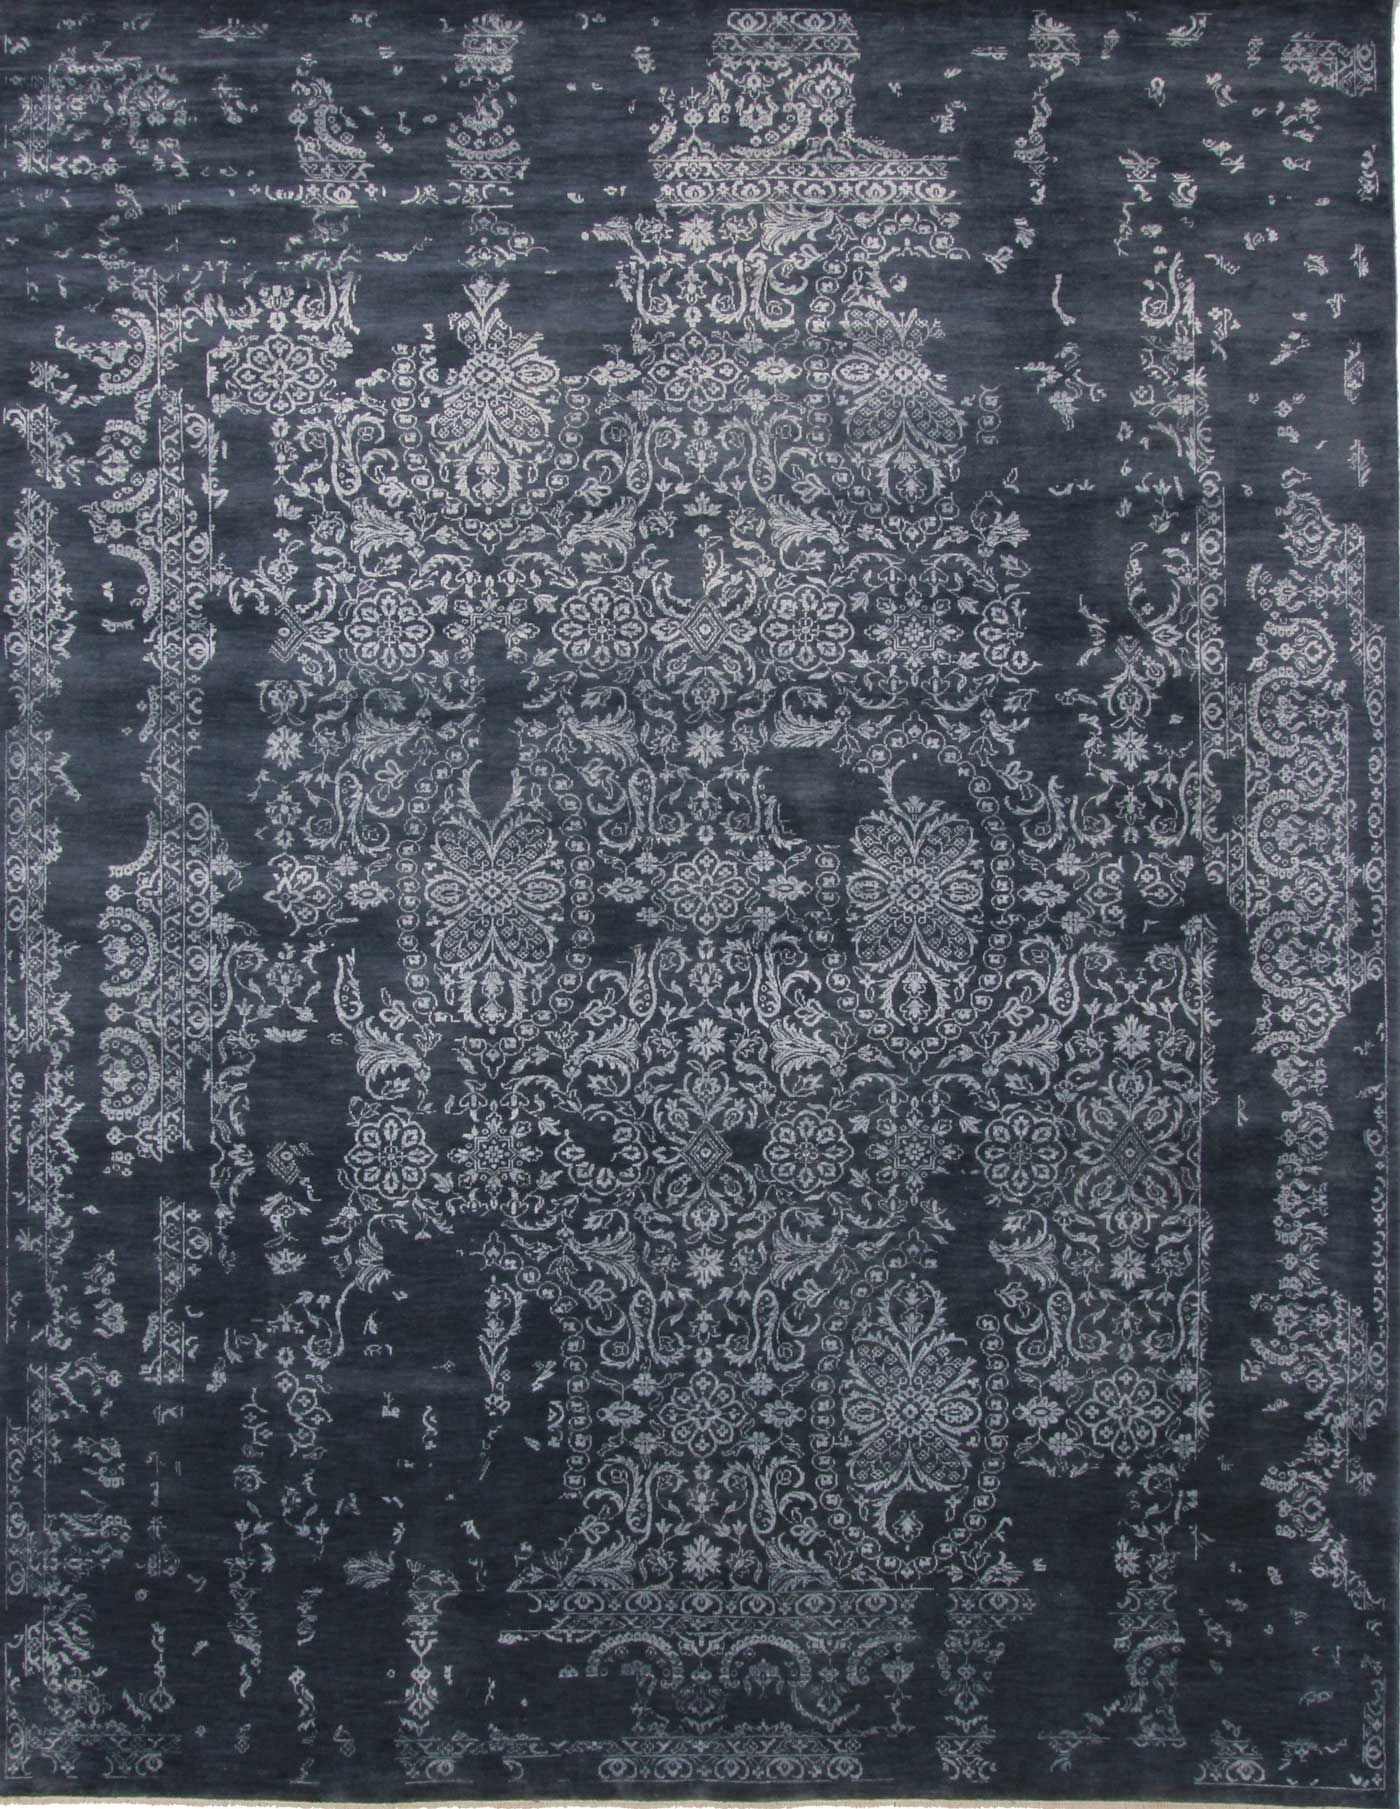 32197 Contemporary Indian Rugs Indian Rugs Rugs On Carpet Cheap Carpet Runners